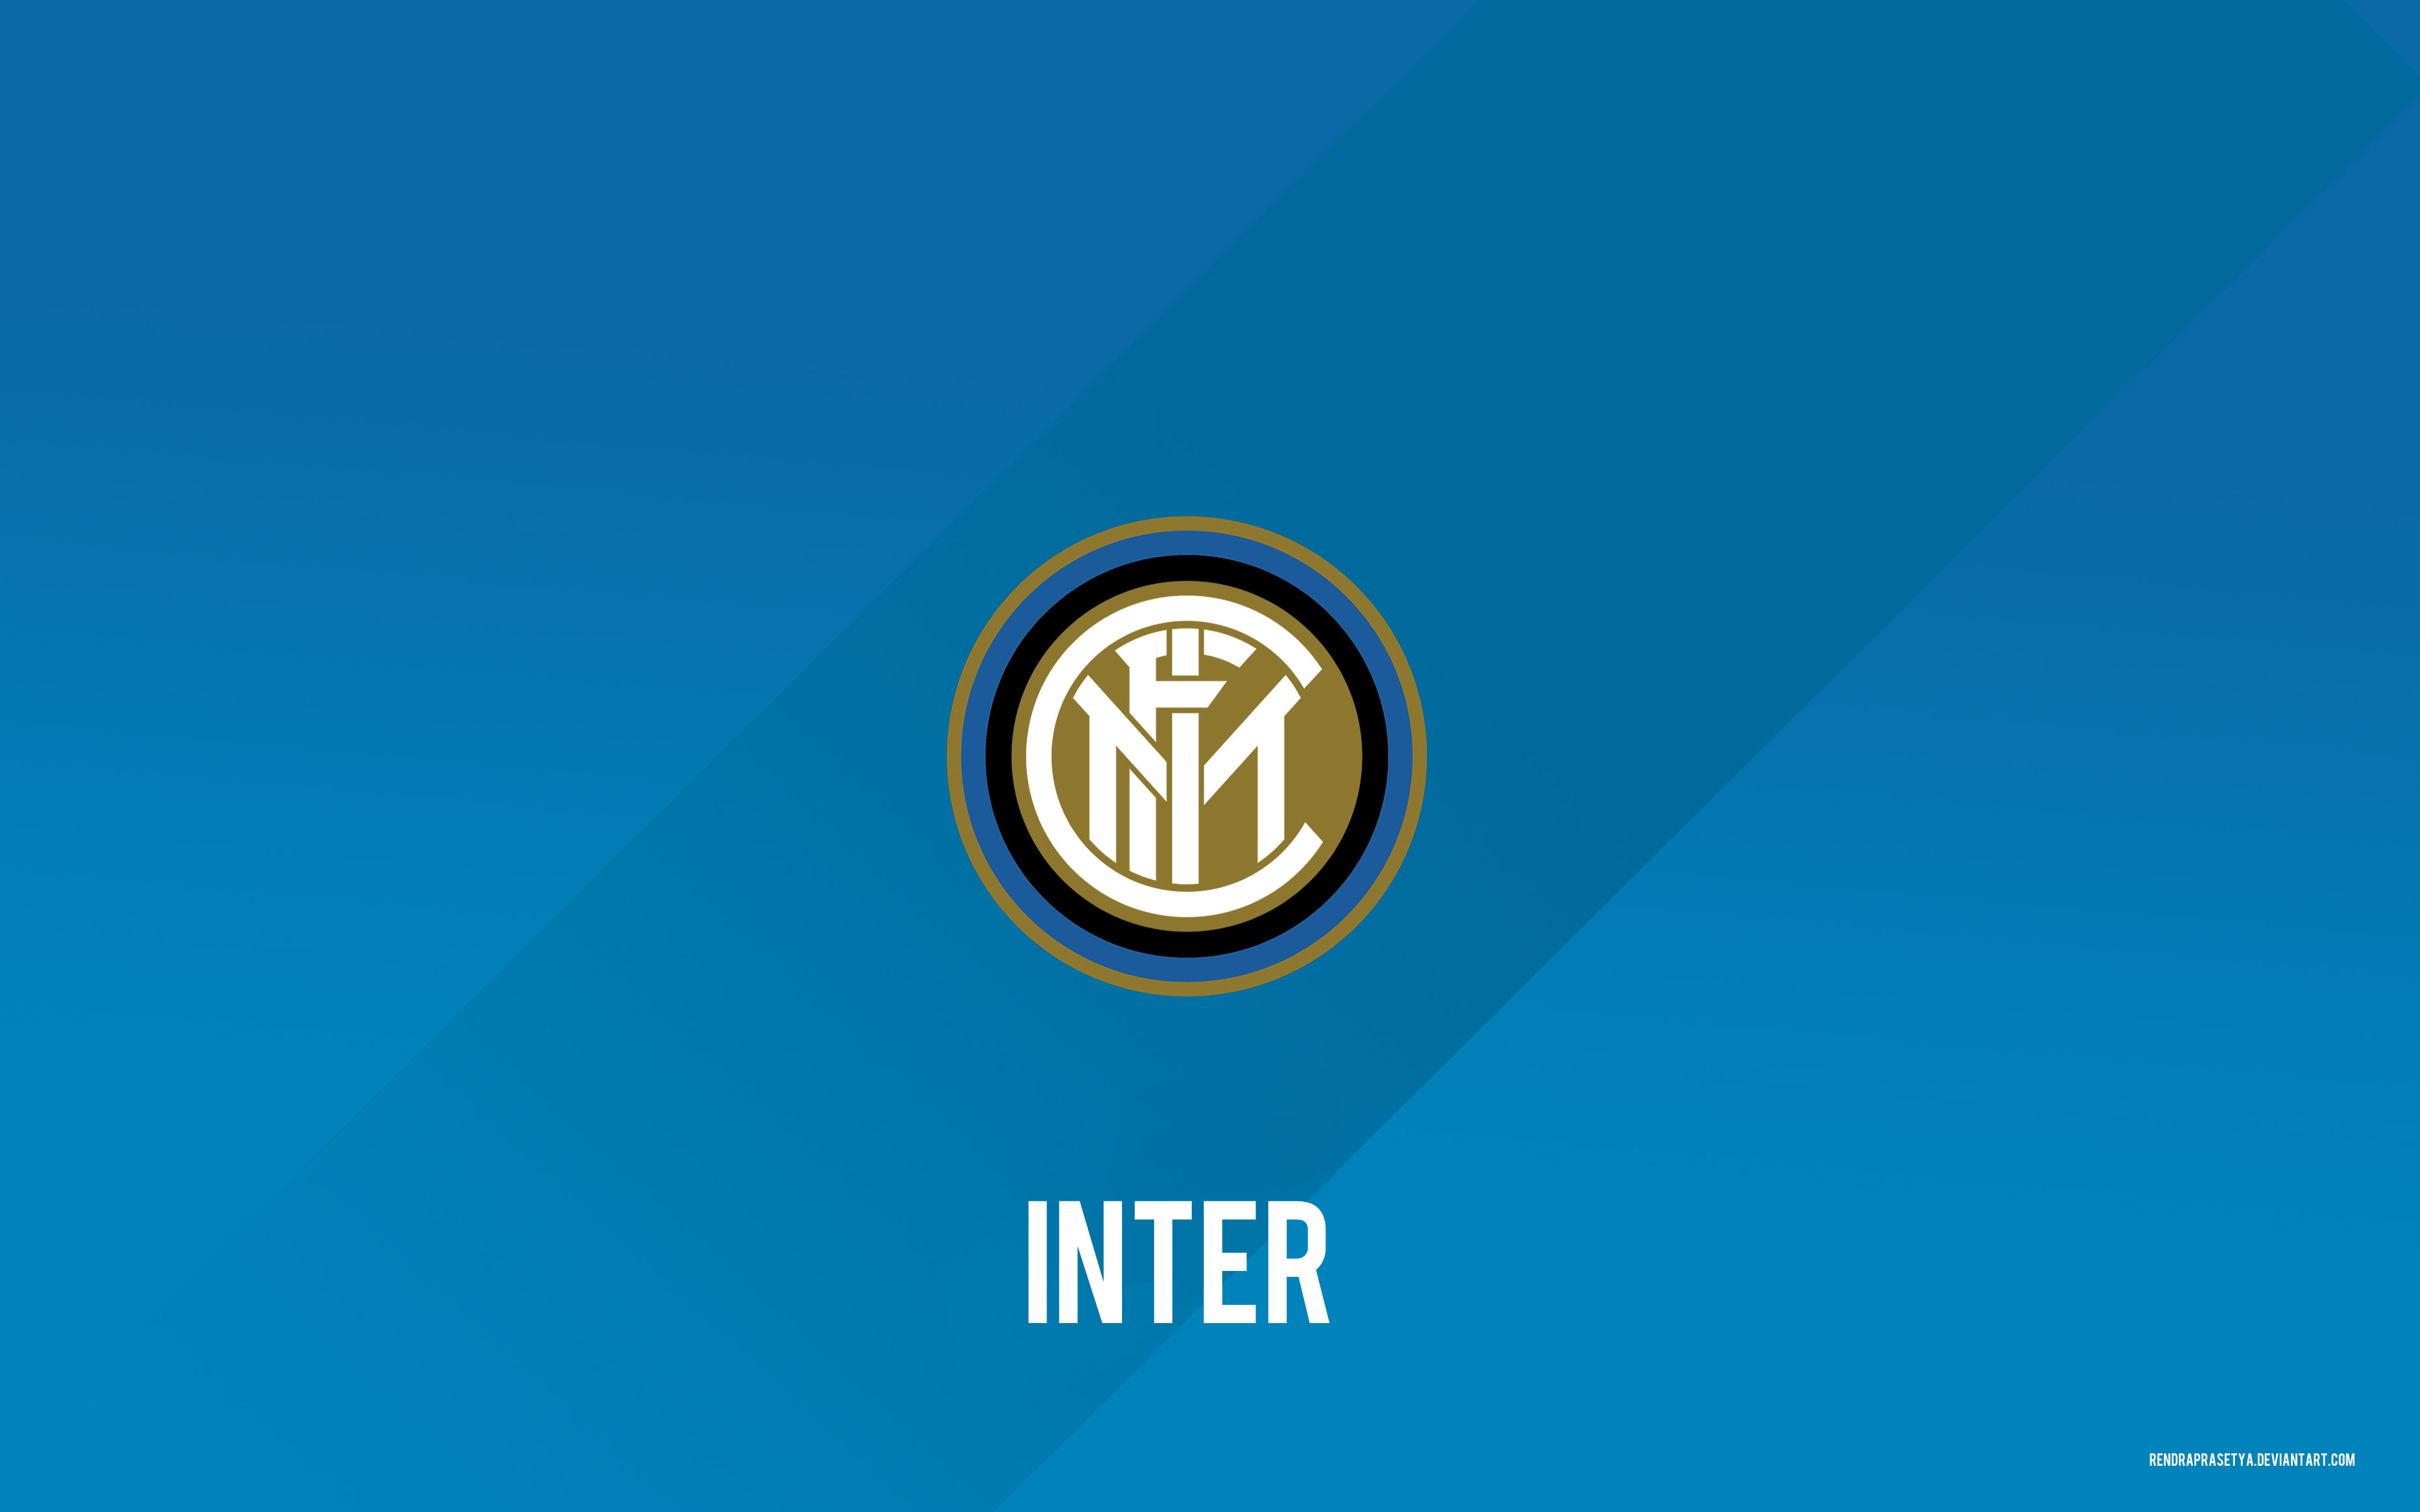 inter milan logo wall 2014 by rendraprasetya on deviantart. Black Bedroom Furniture Sets. Home Design Ideas